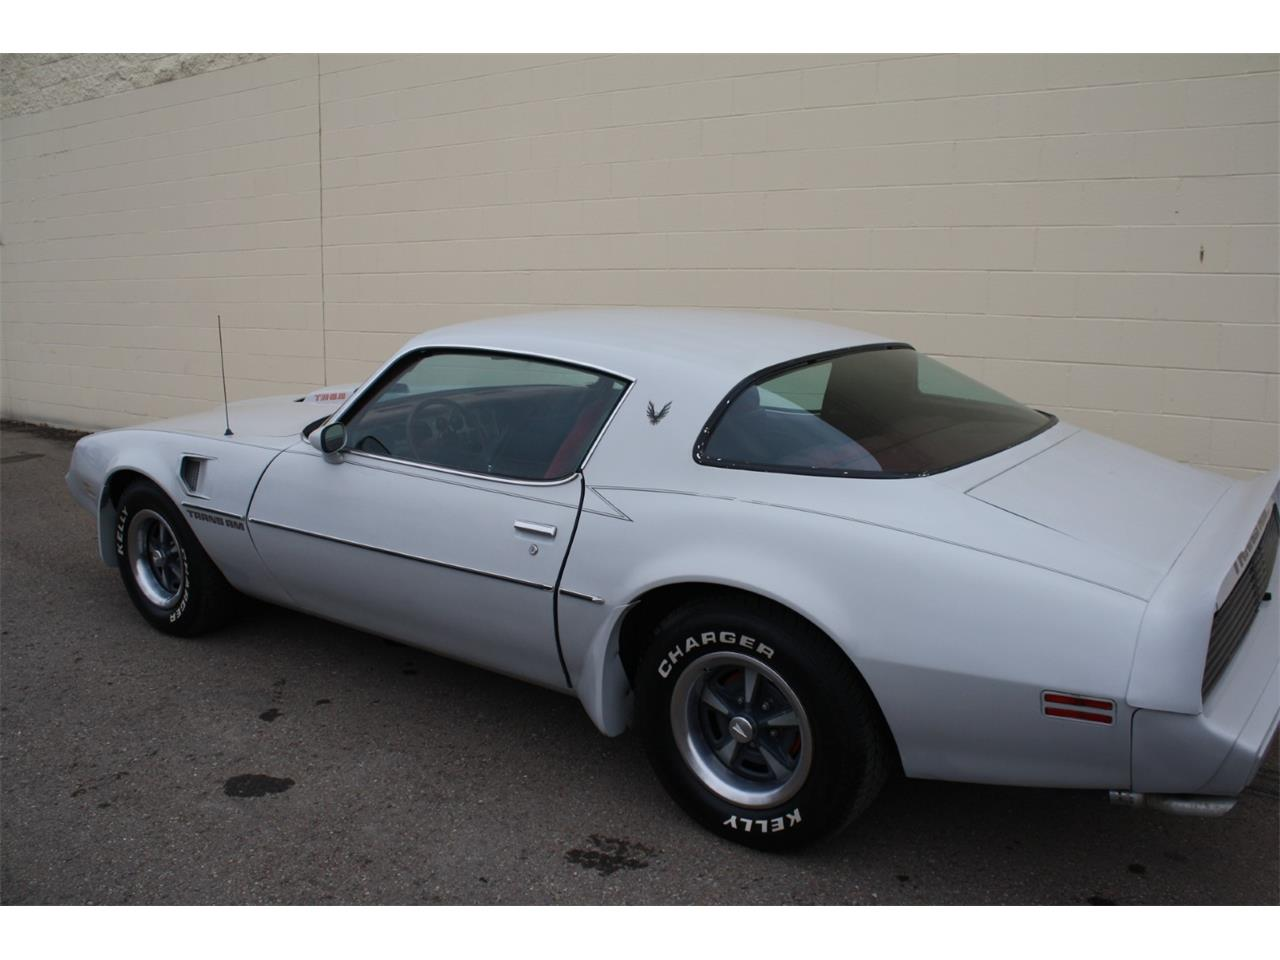 Large Picture of '79 Firebird Trans Am Auction Vehicle Offered by Lucky Collector Car Auctions - Q67P